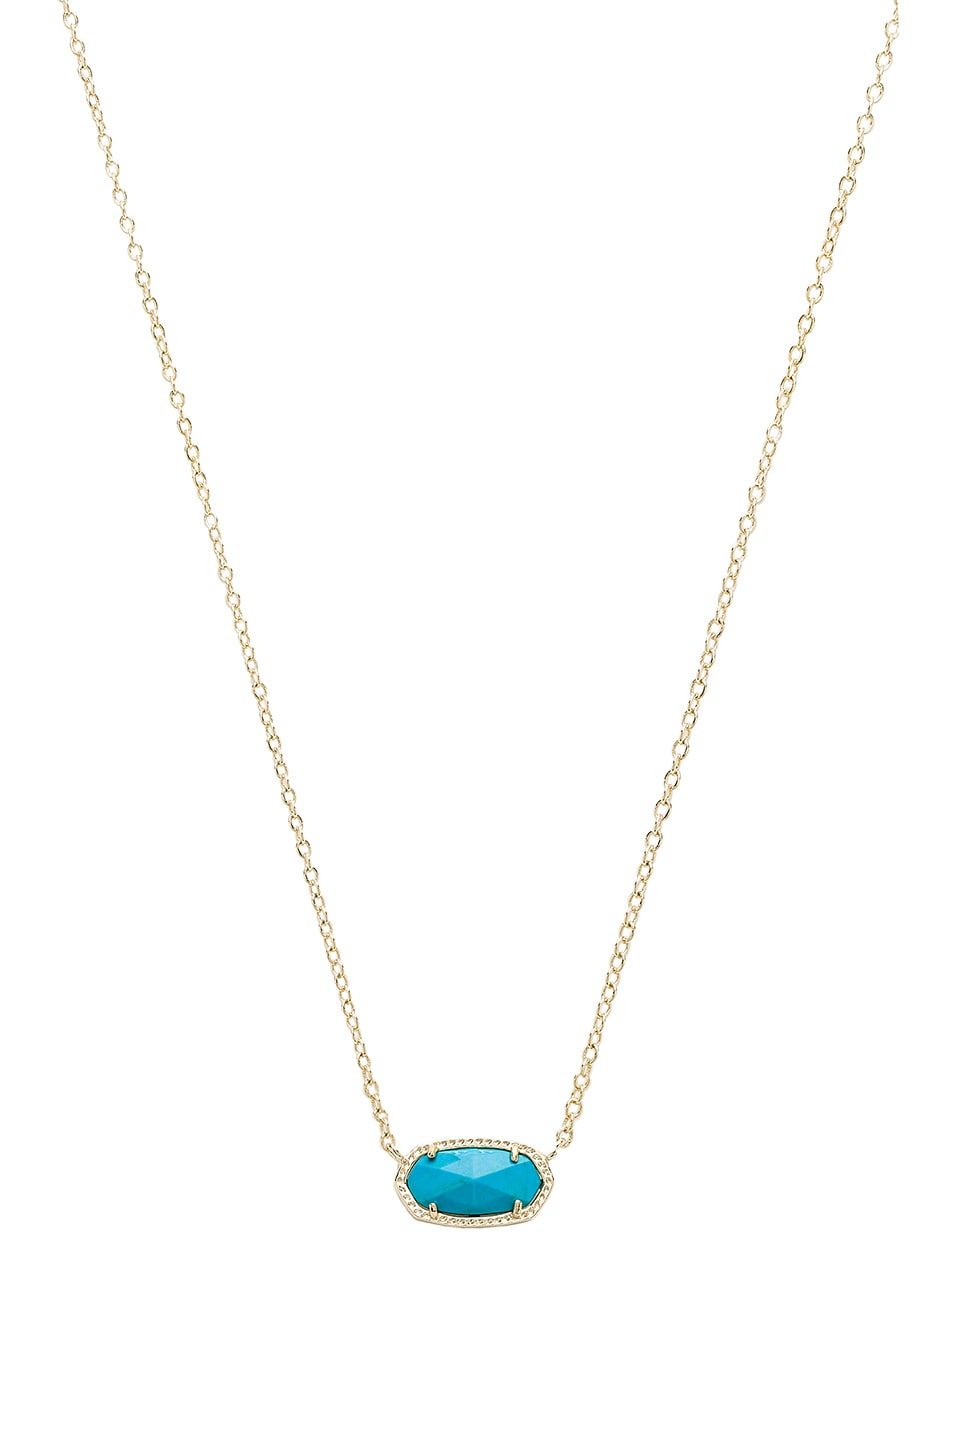 Kendra Scott Elisa Necklace in Turquoise Magnesite